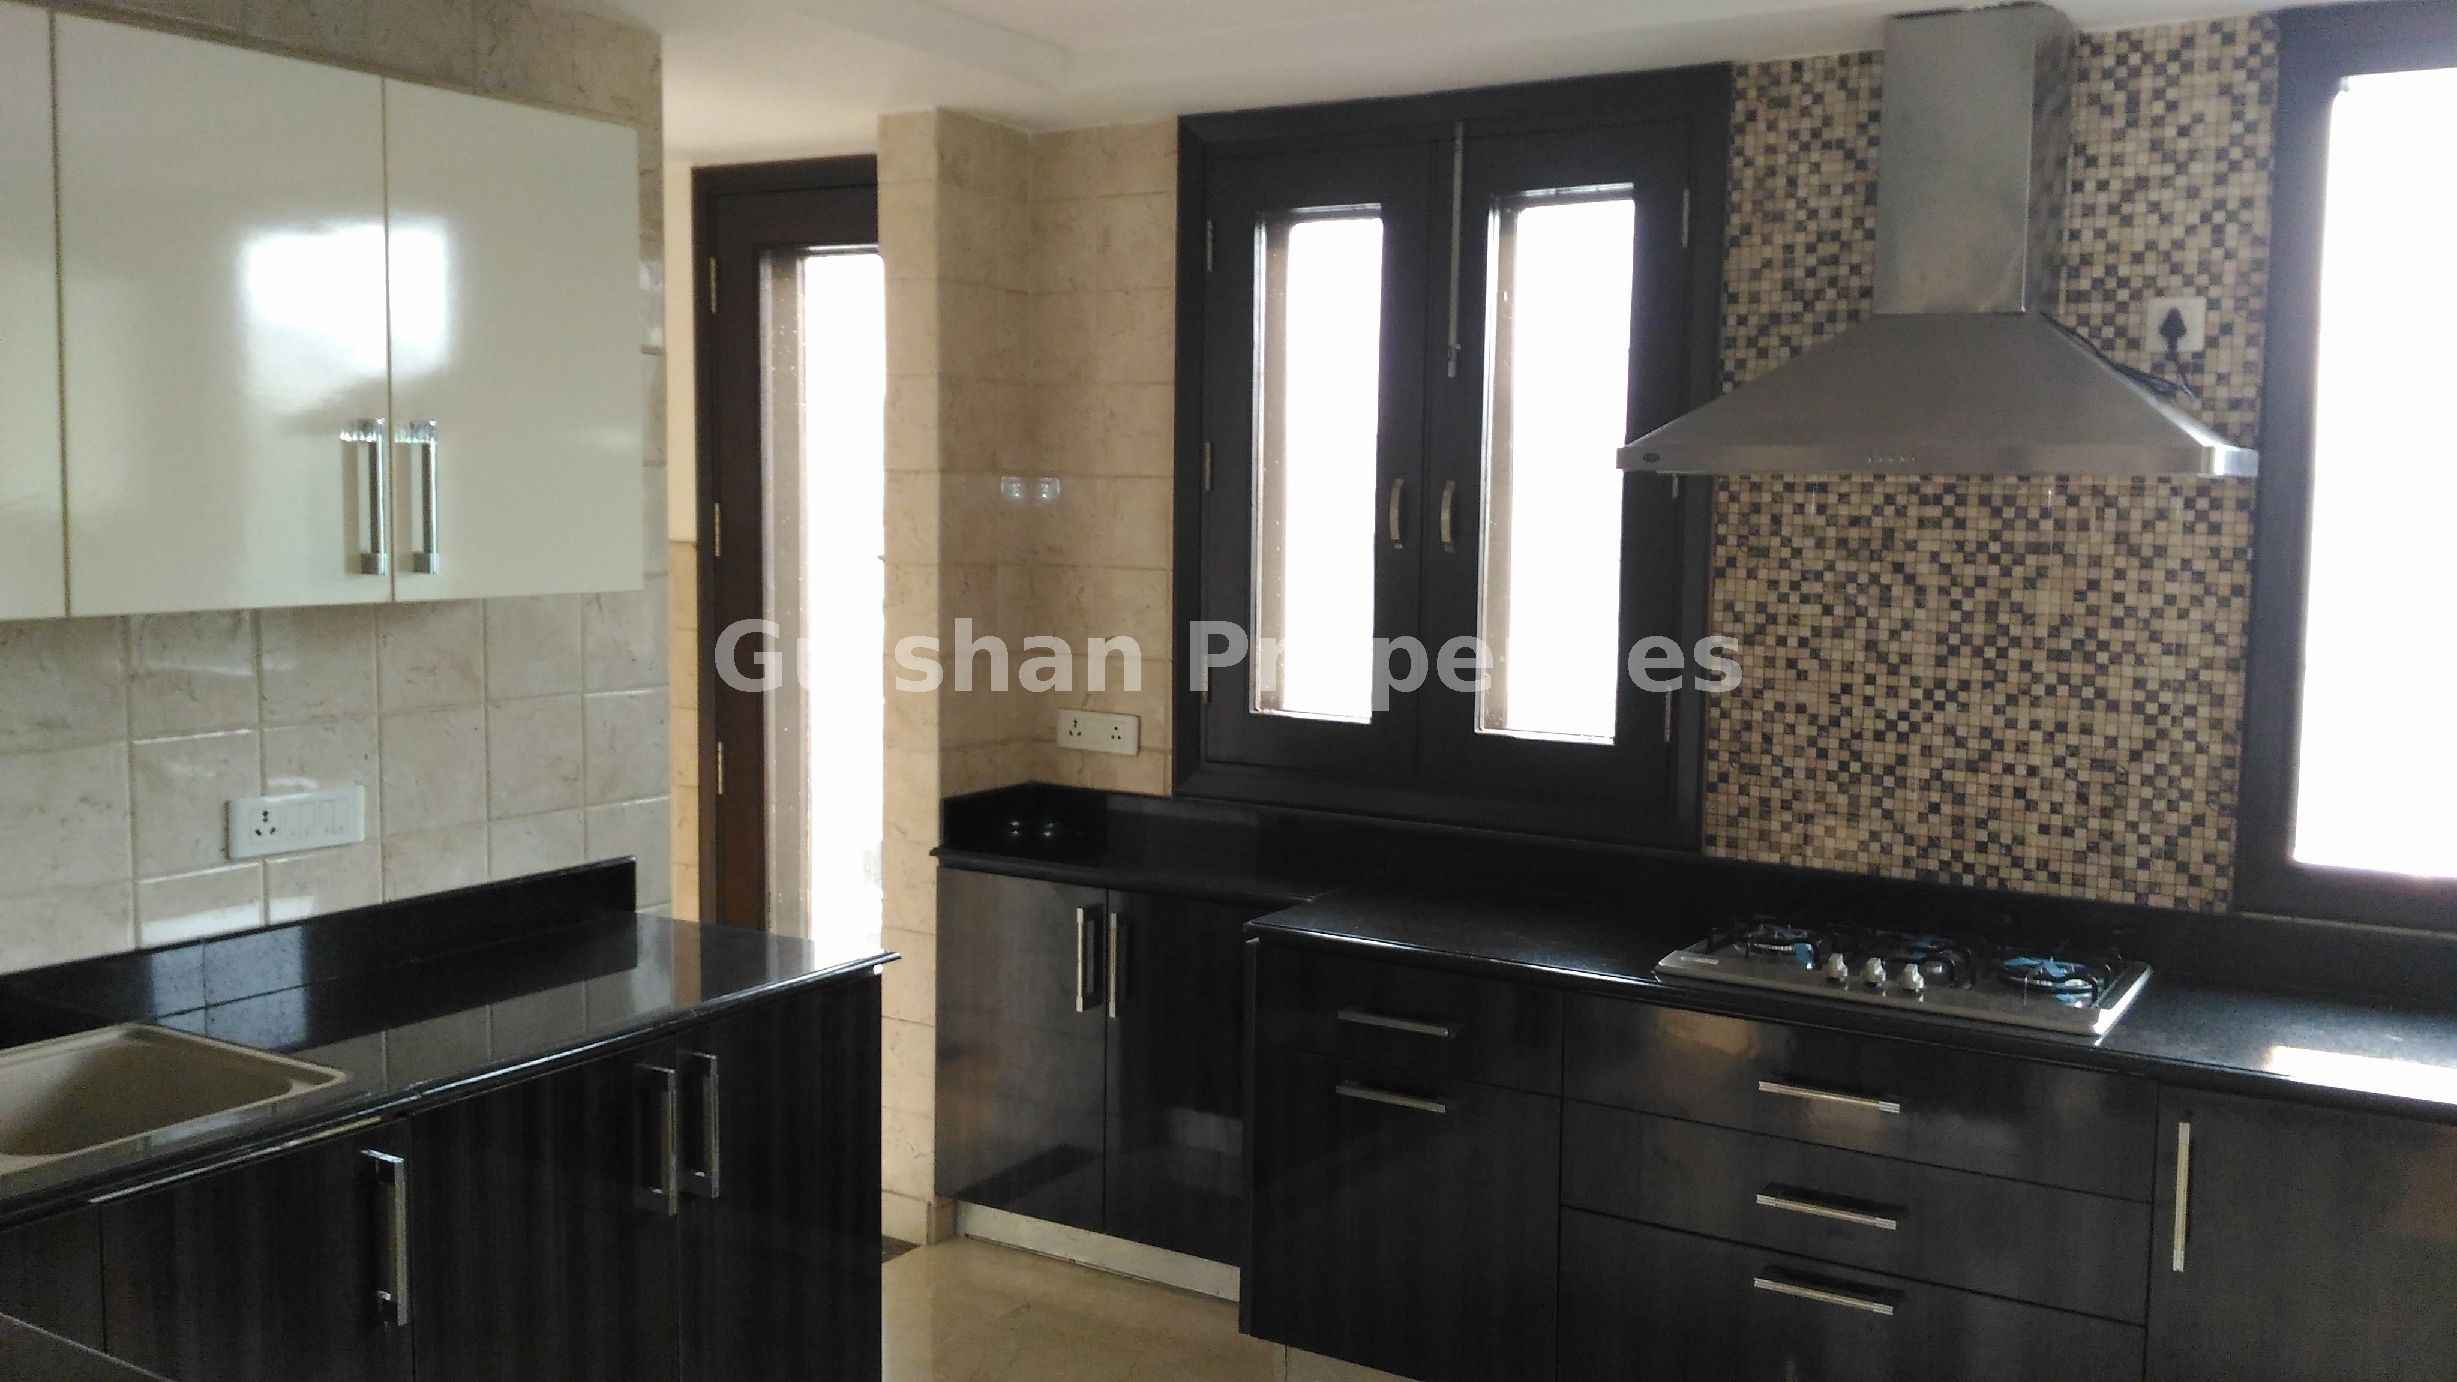 Flat For Rent 👉Location New friends Colony, New Delhi